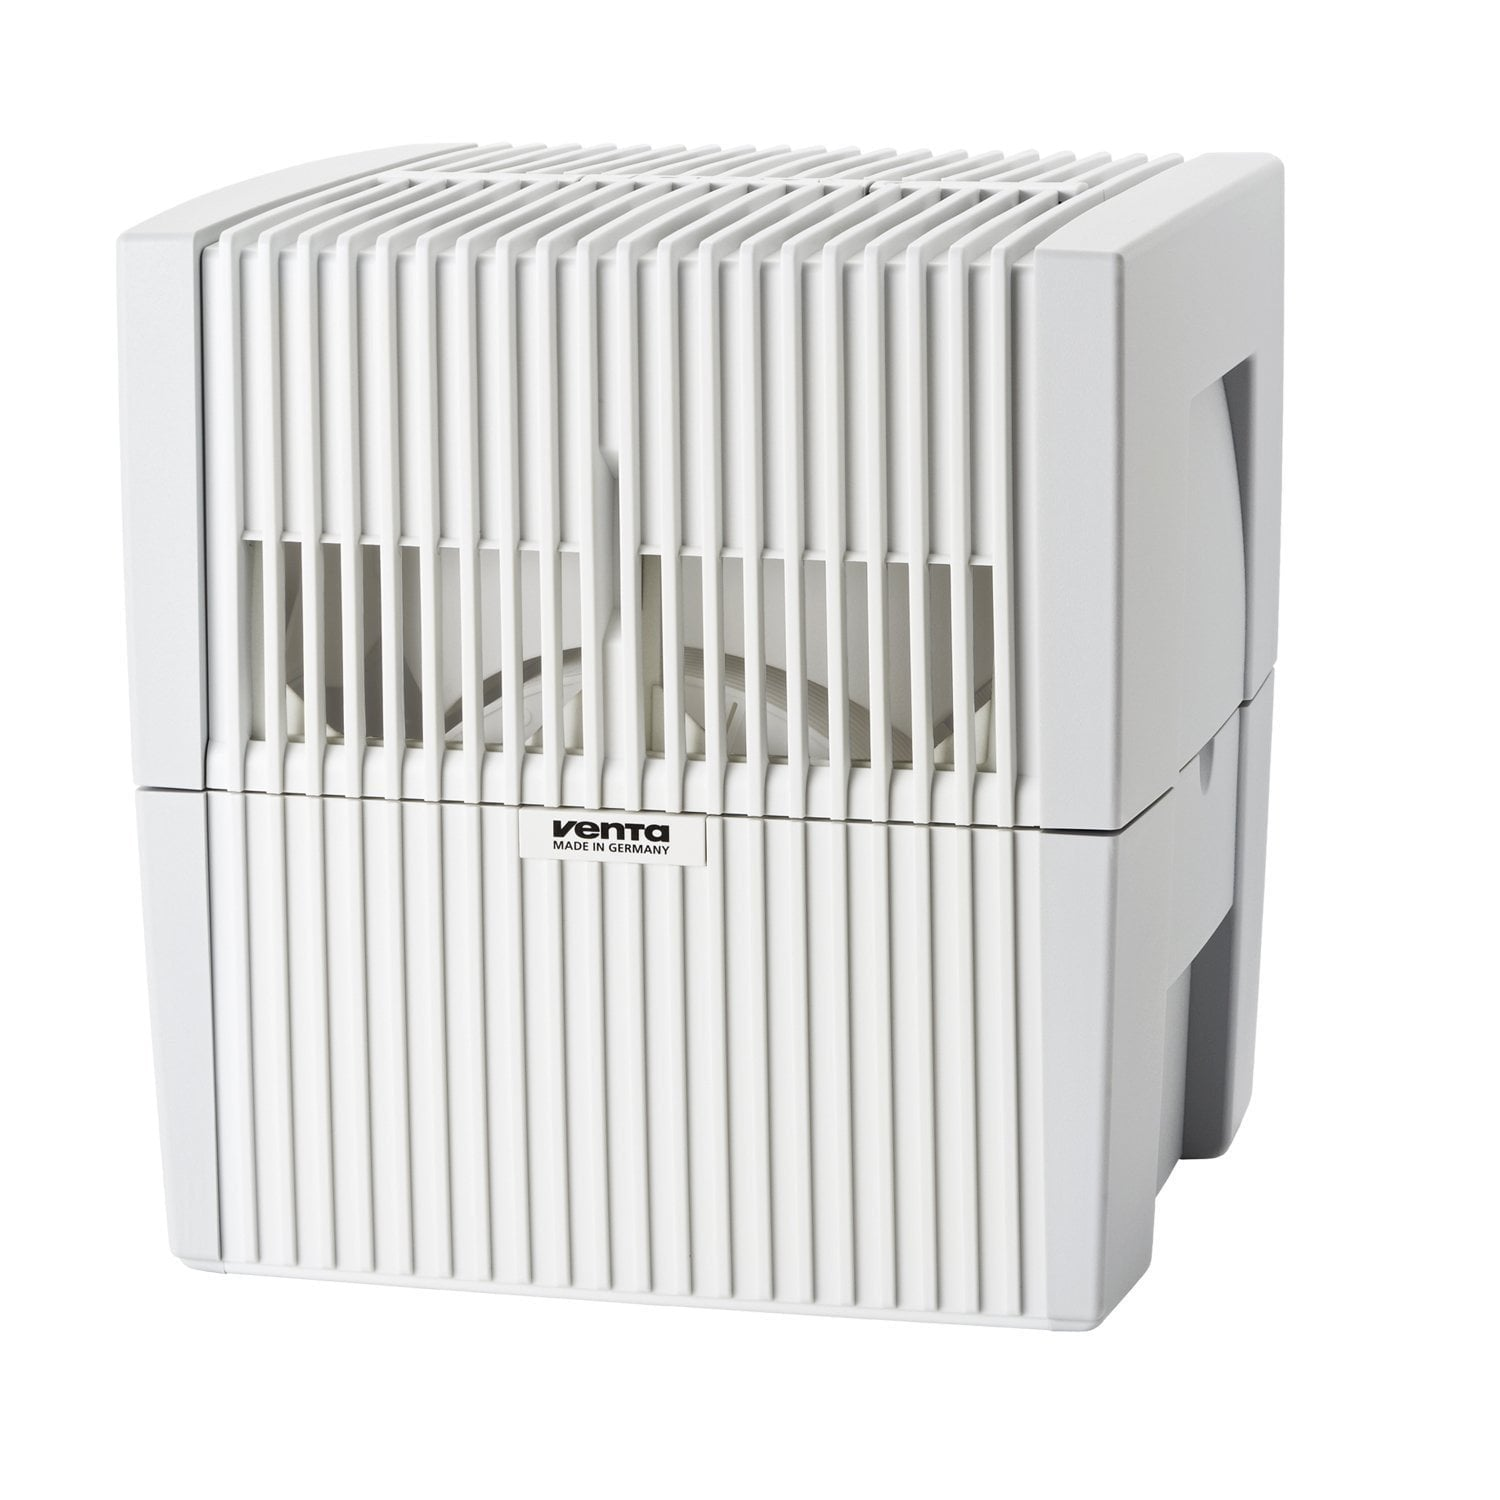 Venta Airwasher LW 25 Air Purifier & Humidifier - White